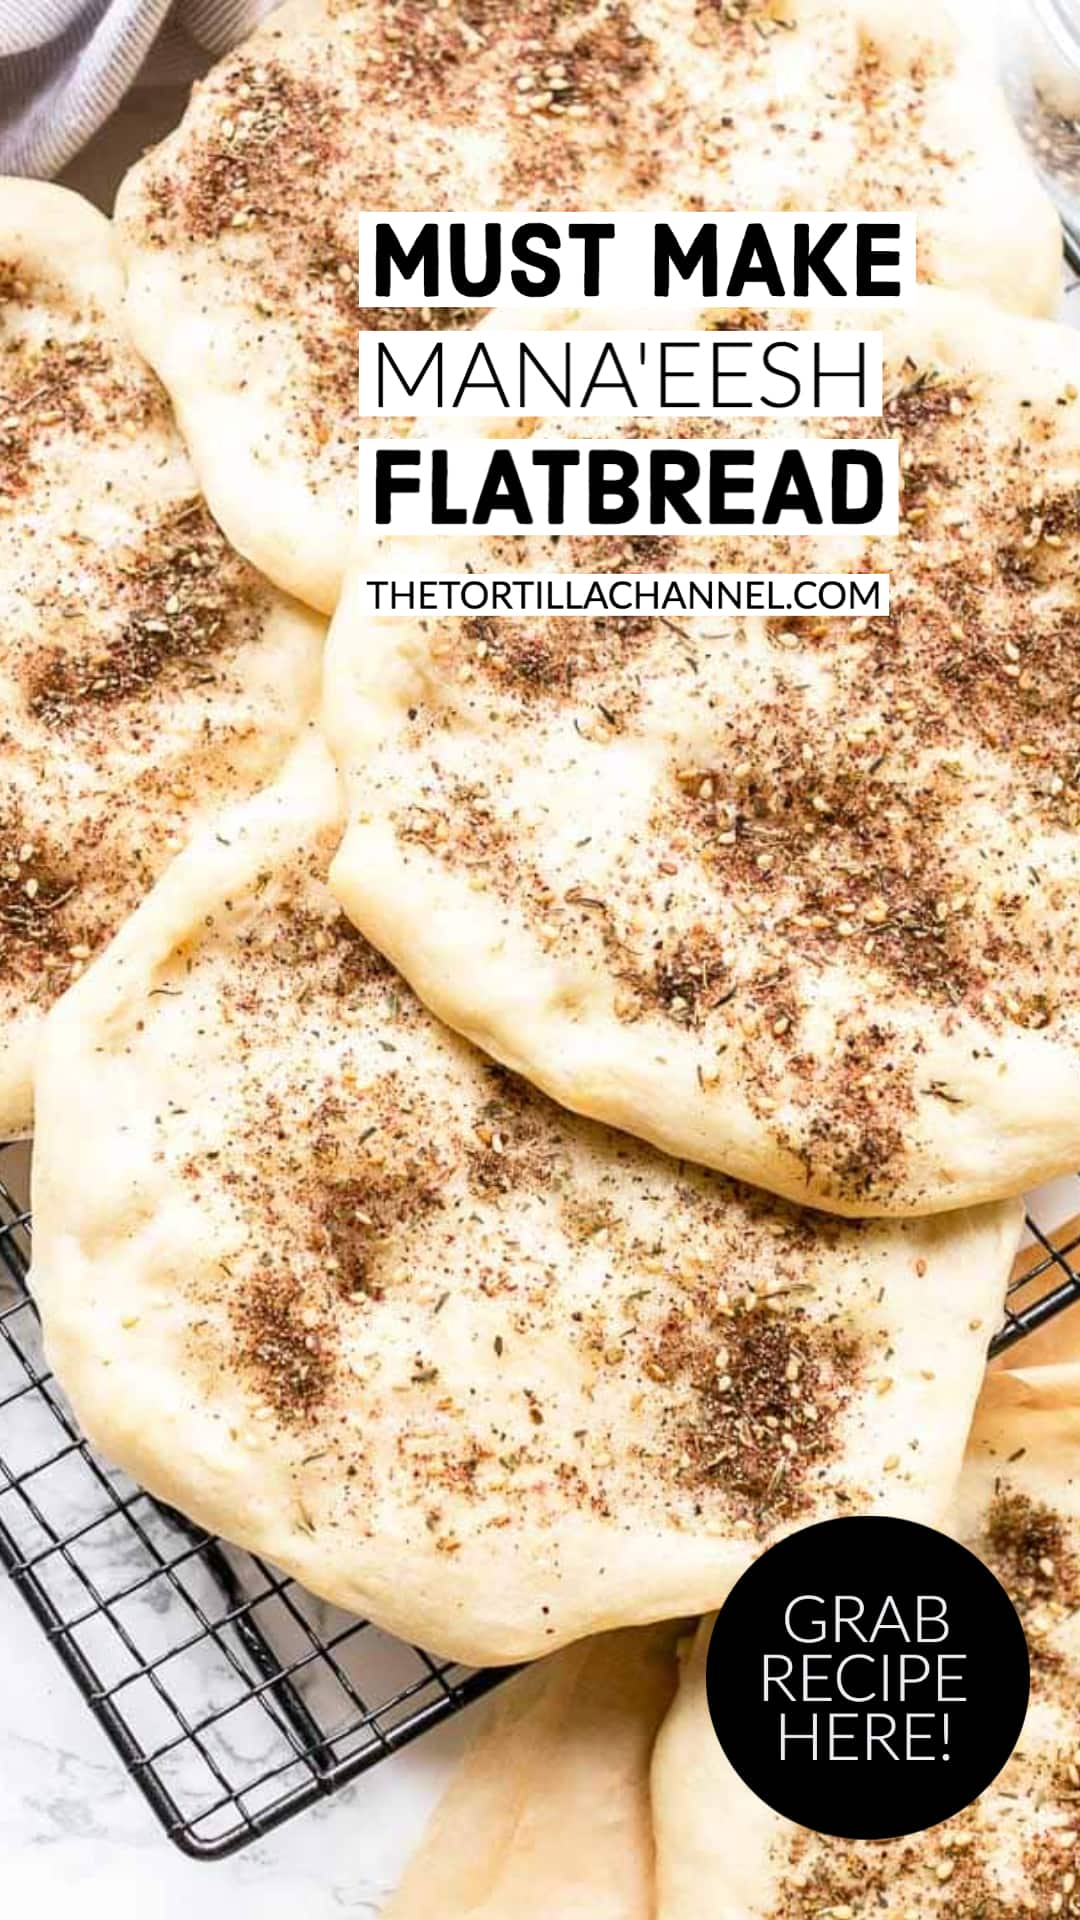 Mana'eesh Lebanese flatbread is a great Middle Eastern flatbread recipe. It is like a Middle Eastern pizza recipe. Decorate with cheese, ground beef or za'atar seasoning. Visit thetortillachannel.com for the full recipe #thetortillachannel #manaeeshflatbread #lebaneseflatbread #flatbread